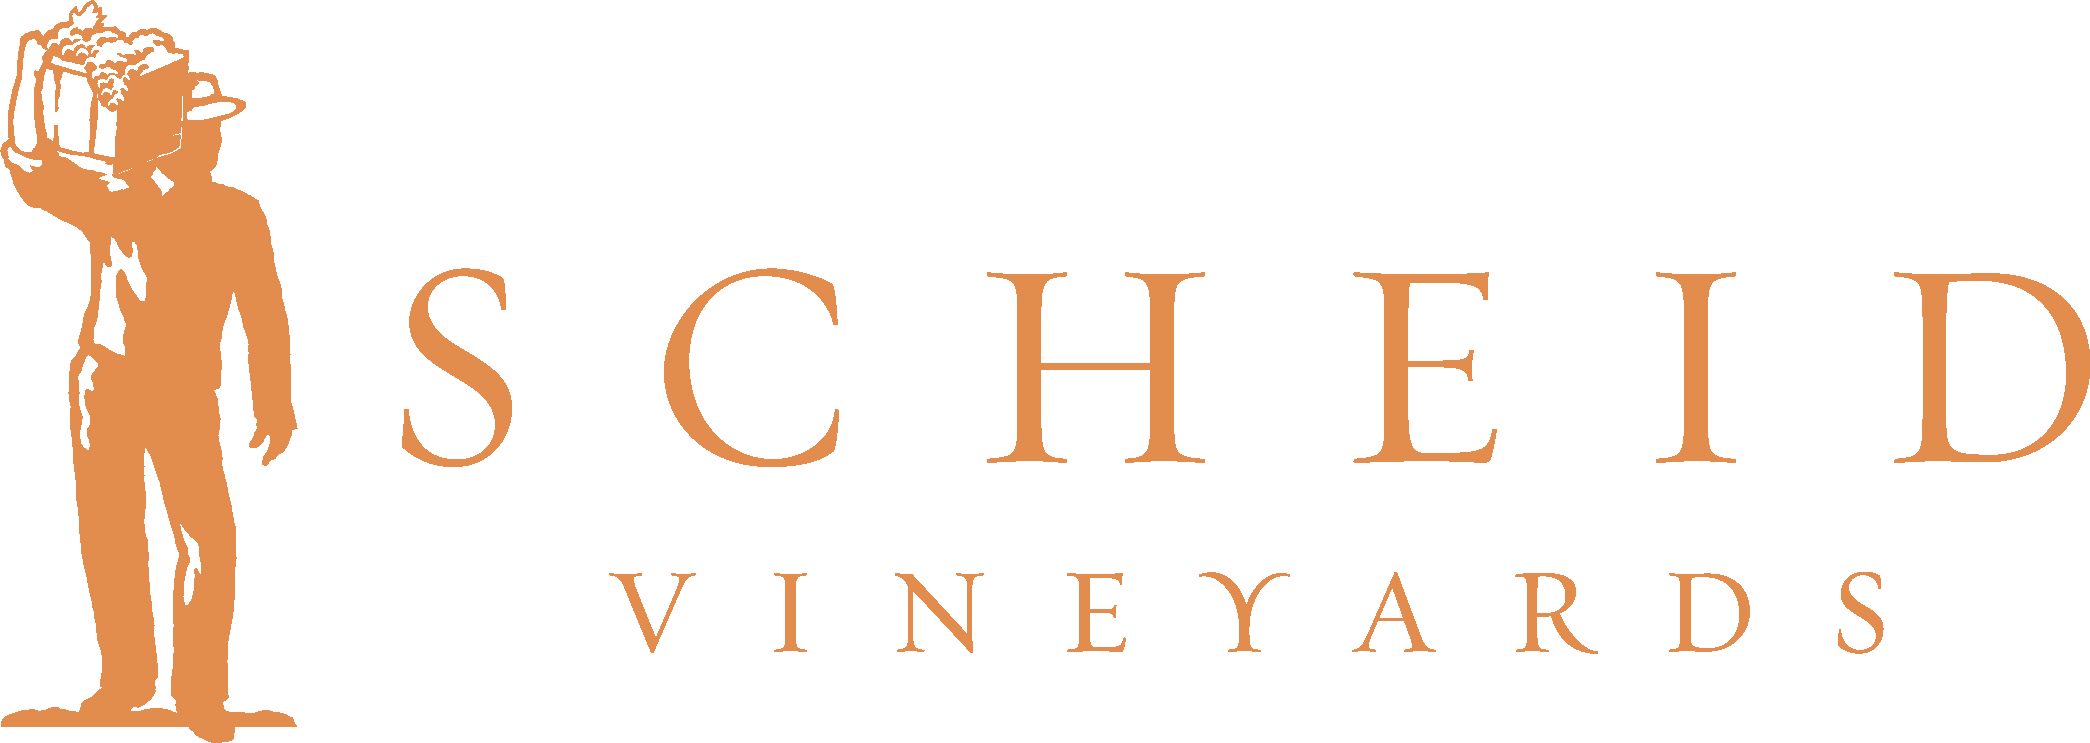 Scheid Vineyards logo in gold